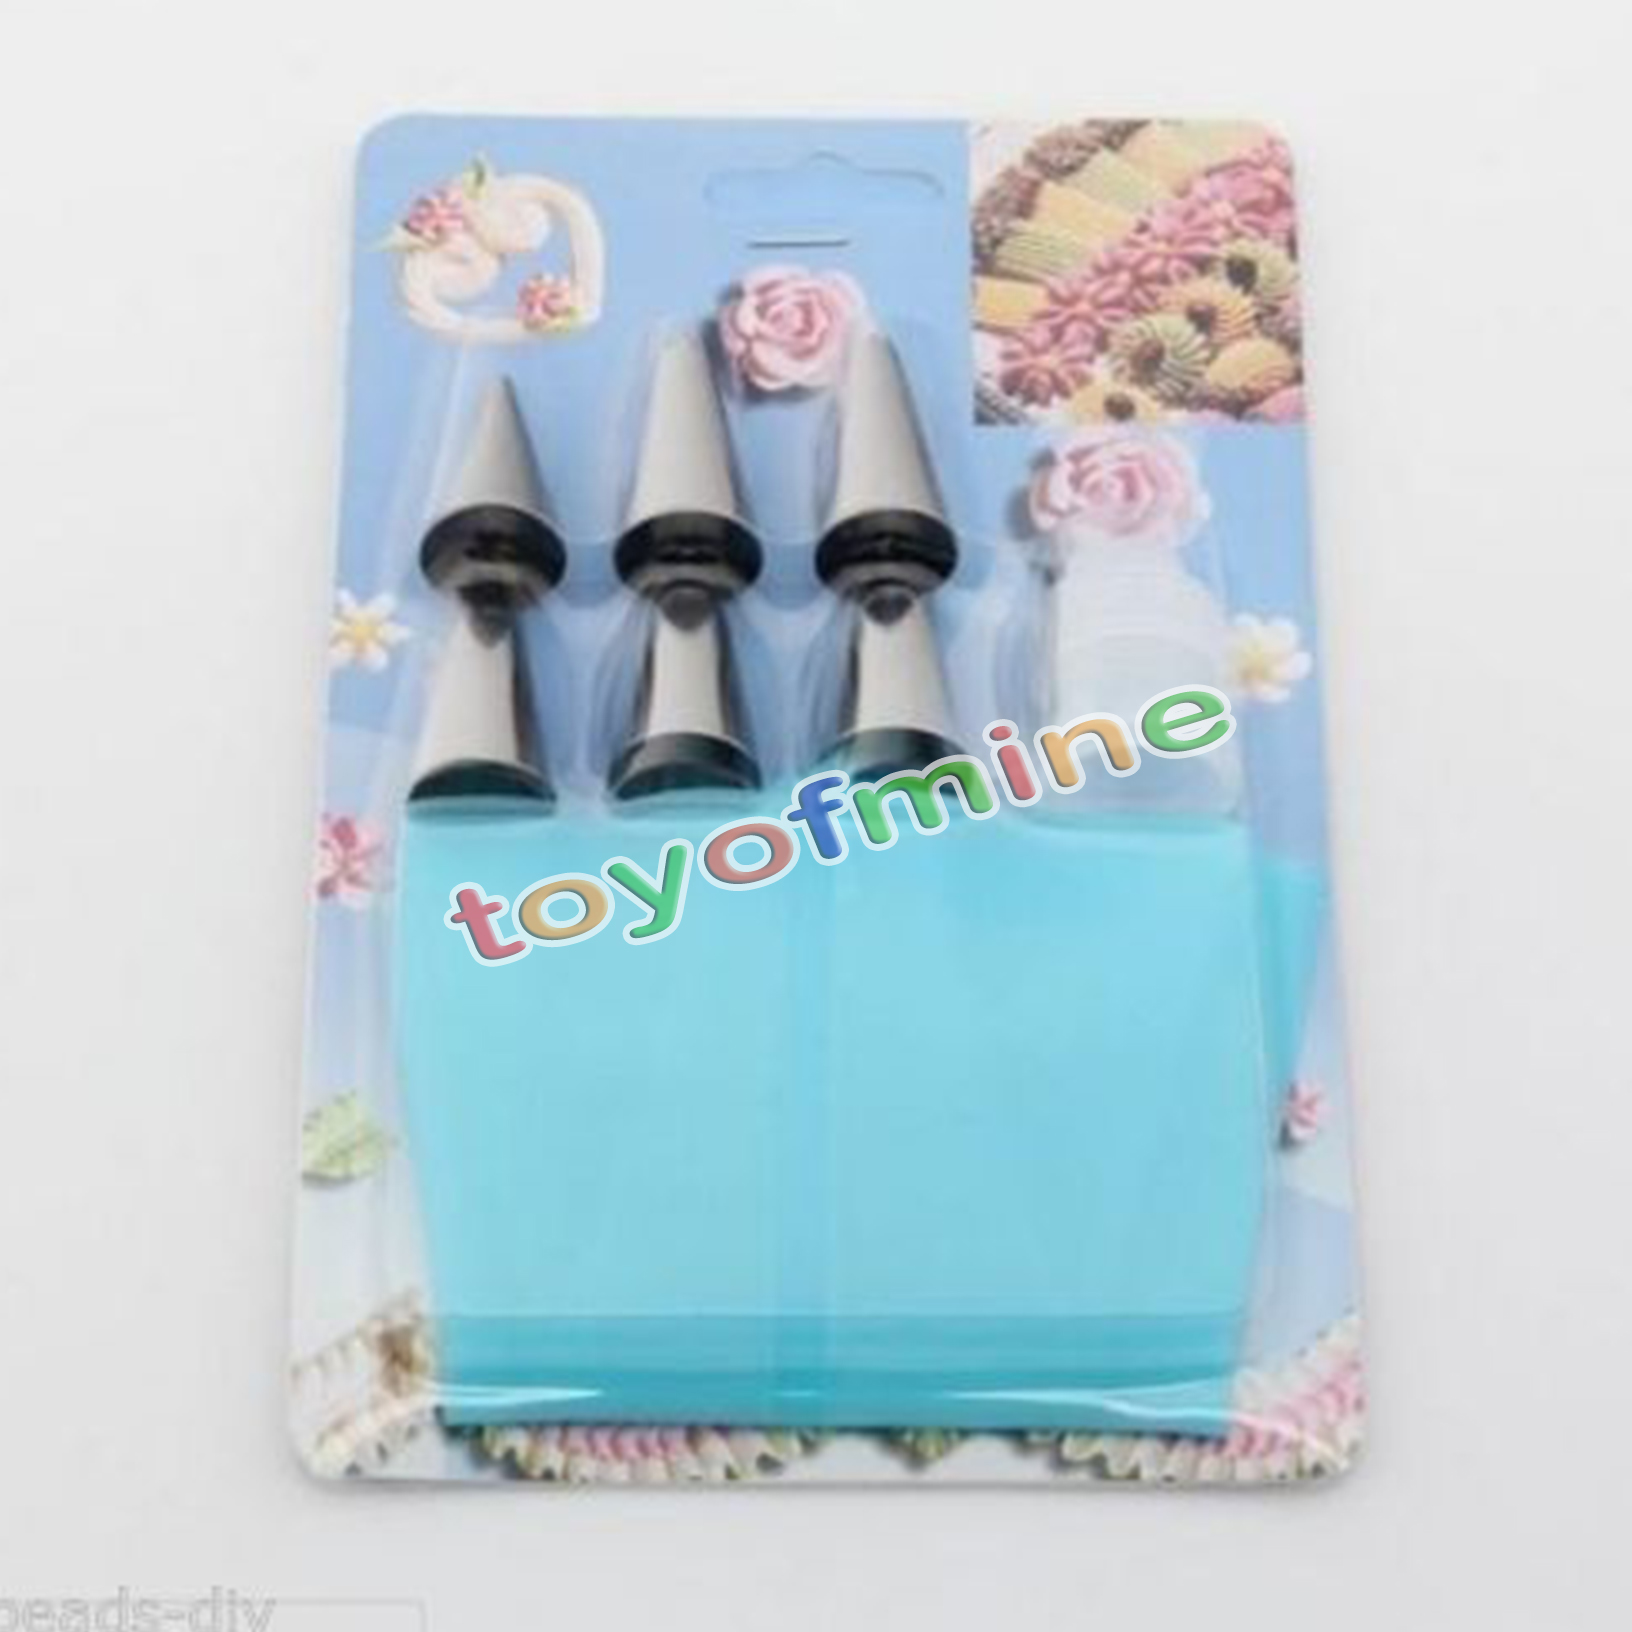 New Silicone Icing Piping Cream Pastry Bag + 6x Nozzle Set ...